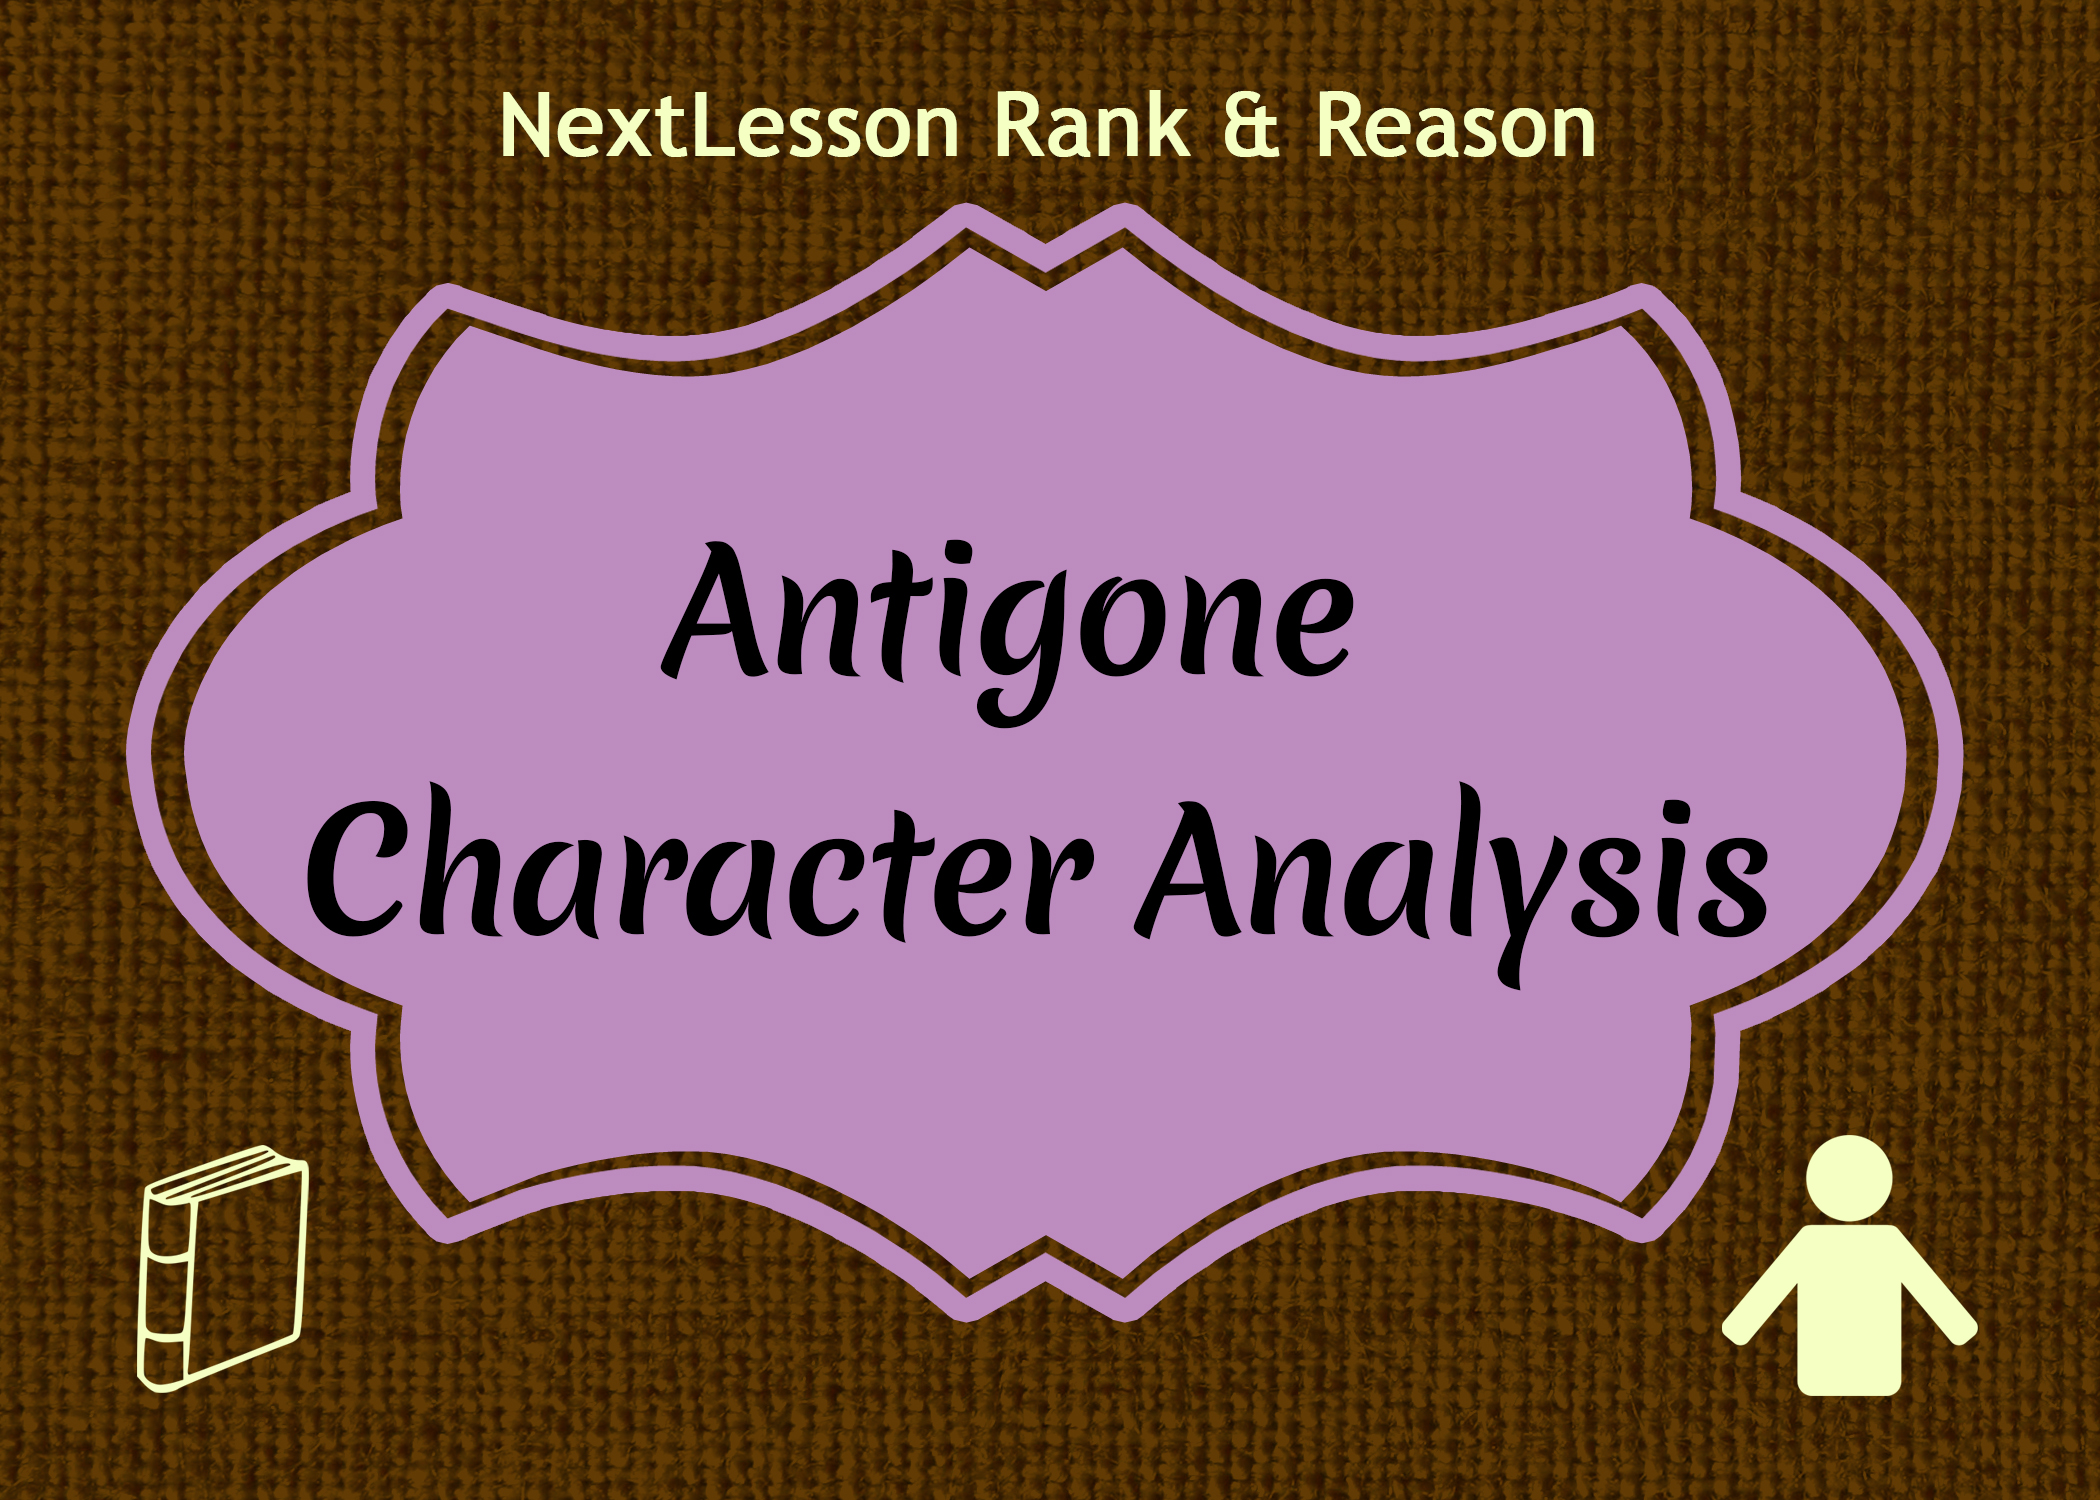 antigone summary  antigone character analysis in antigone, sophocles portrays antigone smashing heads with her uncle, creon, when their own individual loyalty contradicts each other and their beliefs it all began with the tragedy of polynices' death, which eventually lead antigone to a tragedy of her own by the end of the play through a series.